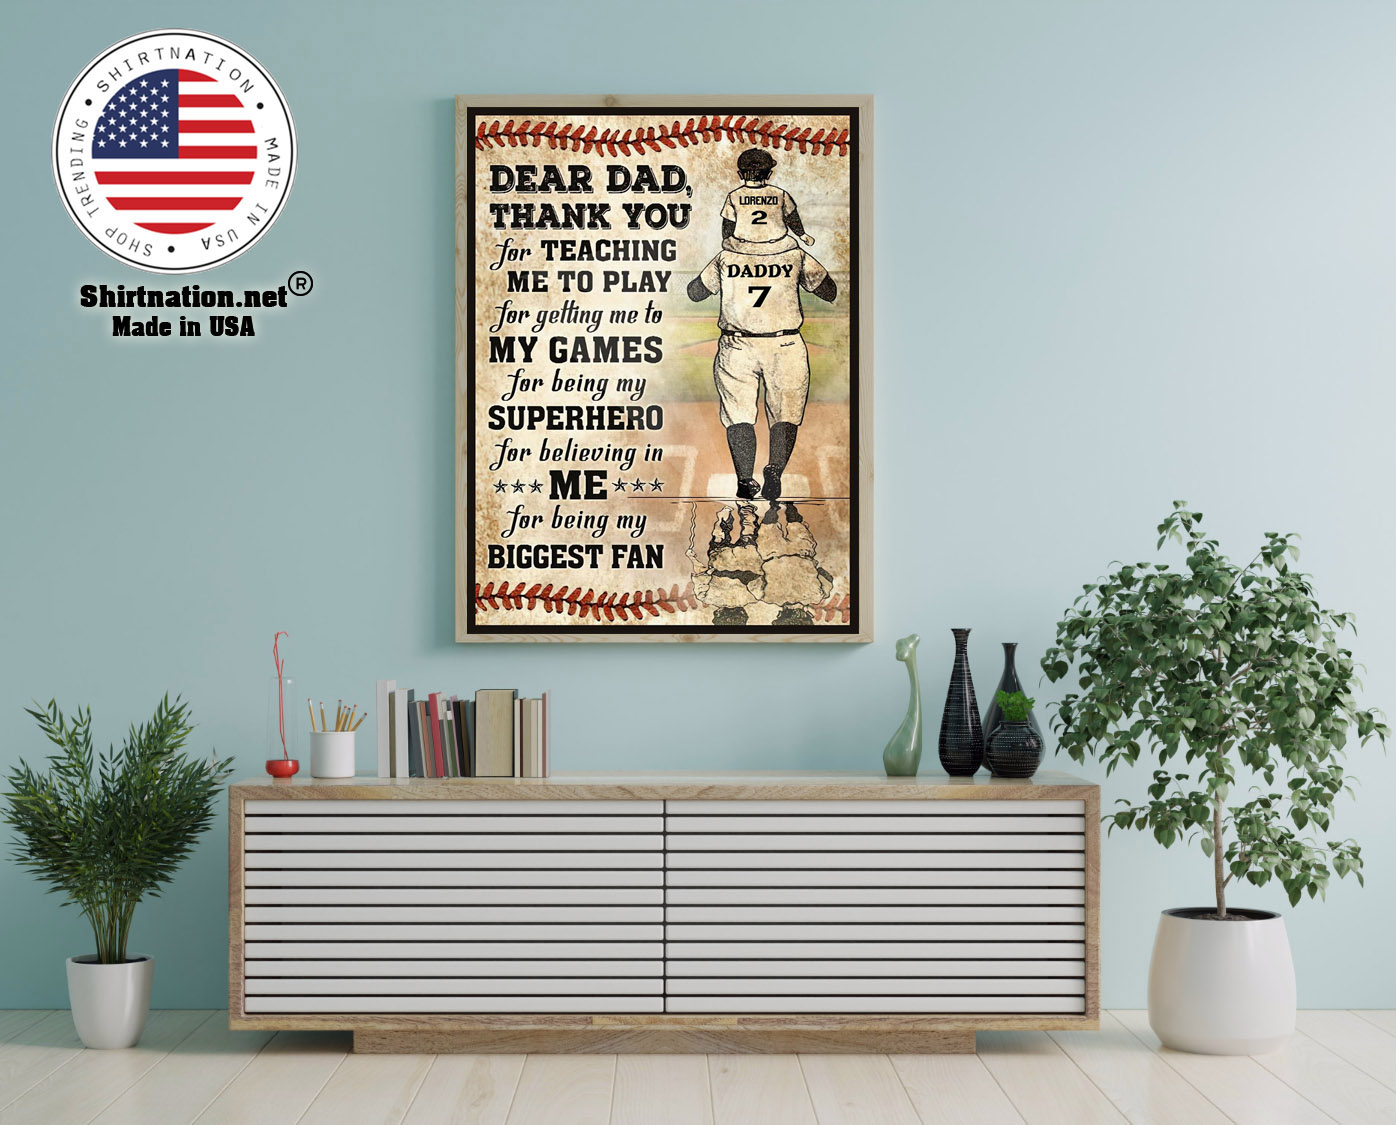 Baseball Dear dad thank you for teaching me to play for getting me to my games custom poster 12